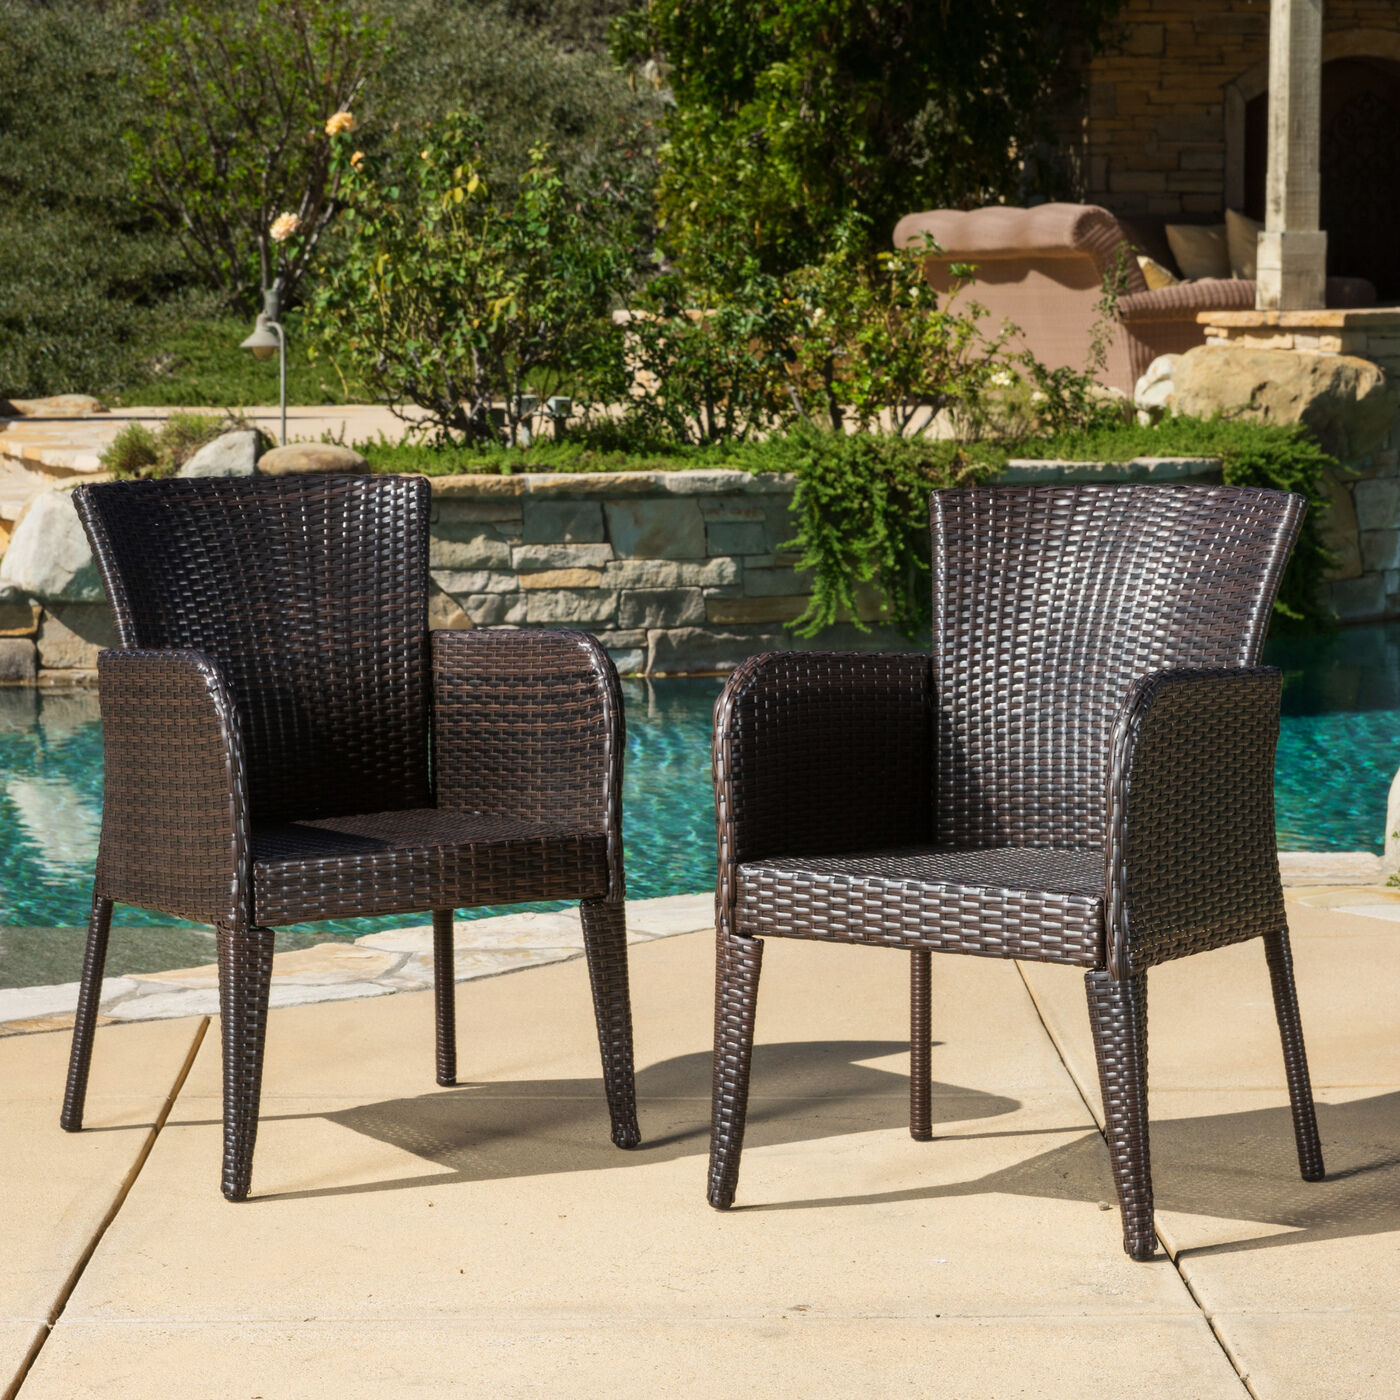 Wicker Patio Chair Outdoor Patio Set Modern Rattan Bistro Contemporary Wicker